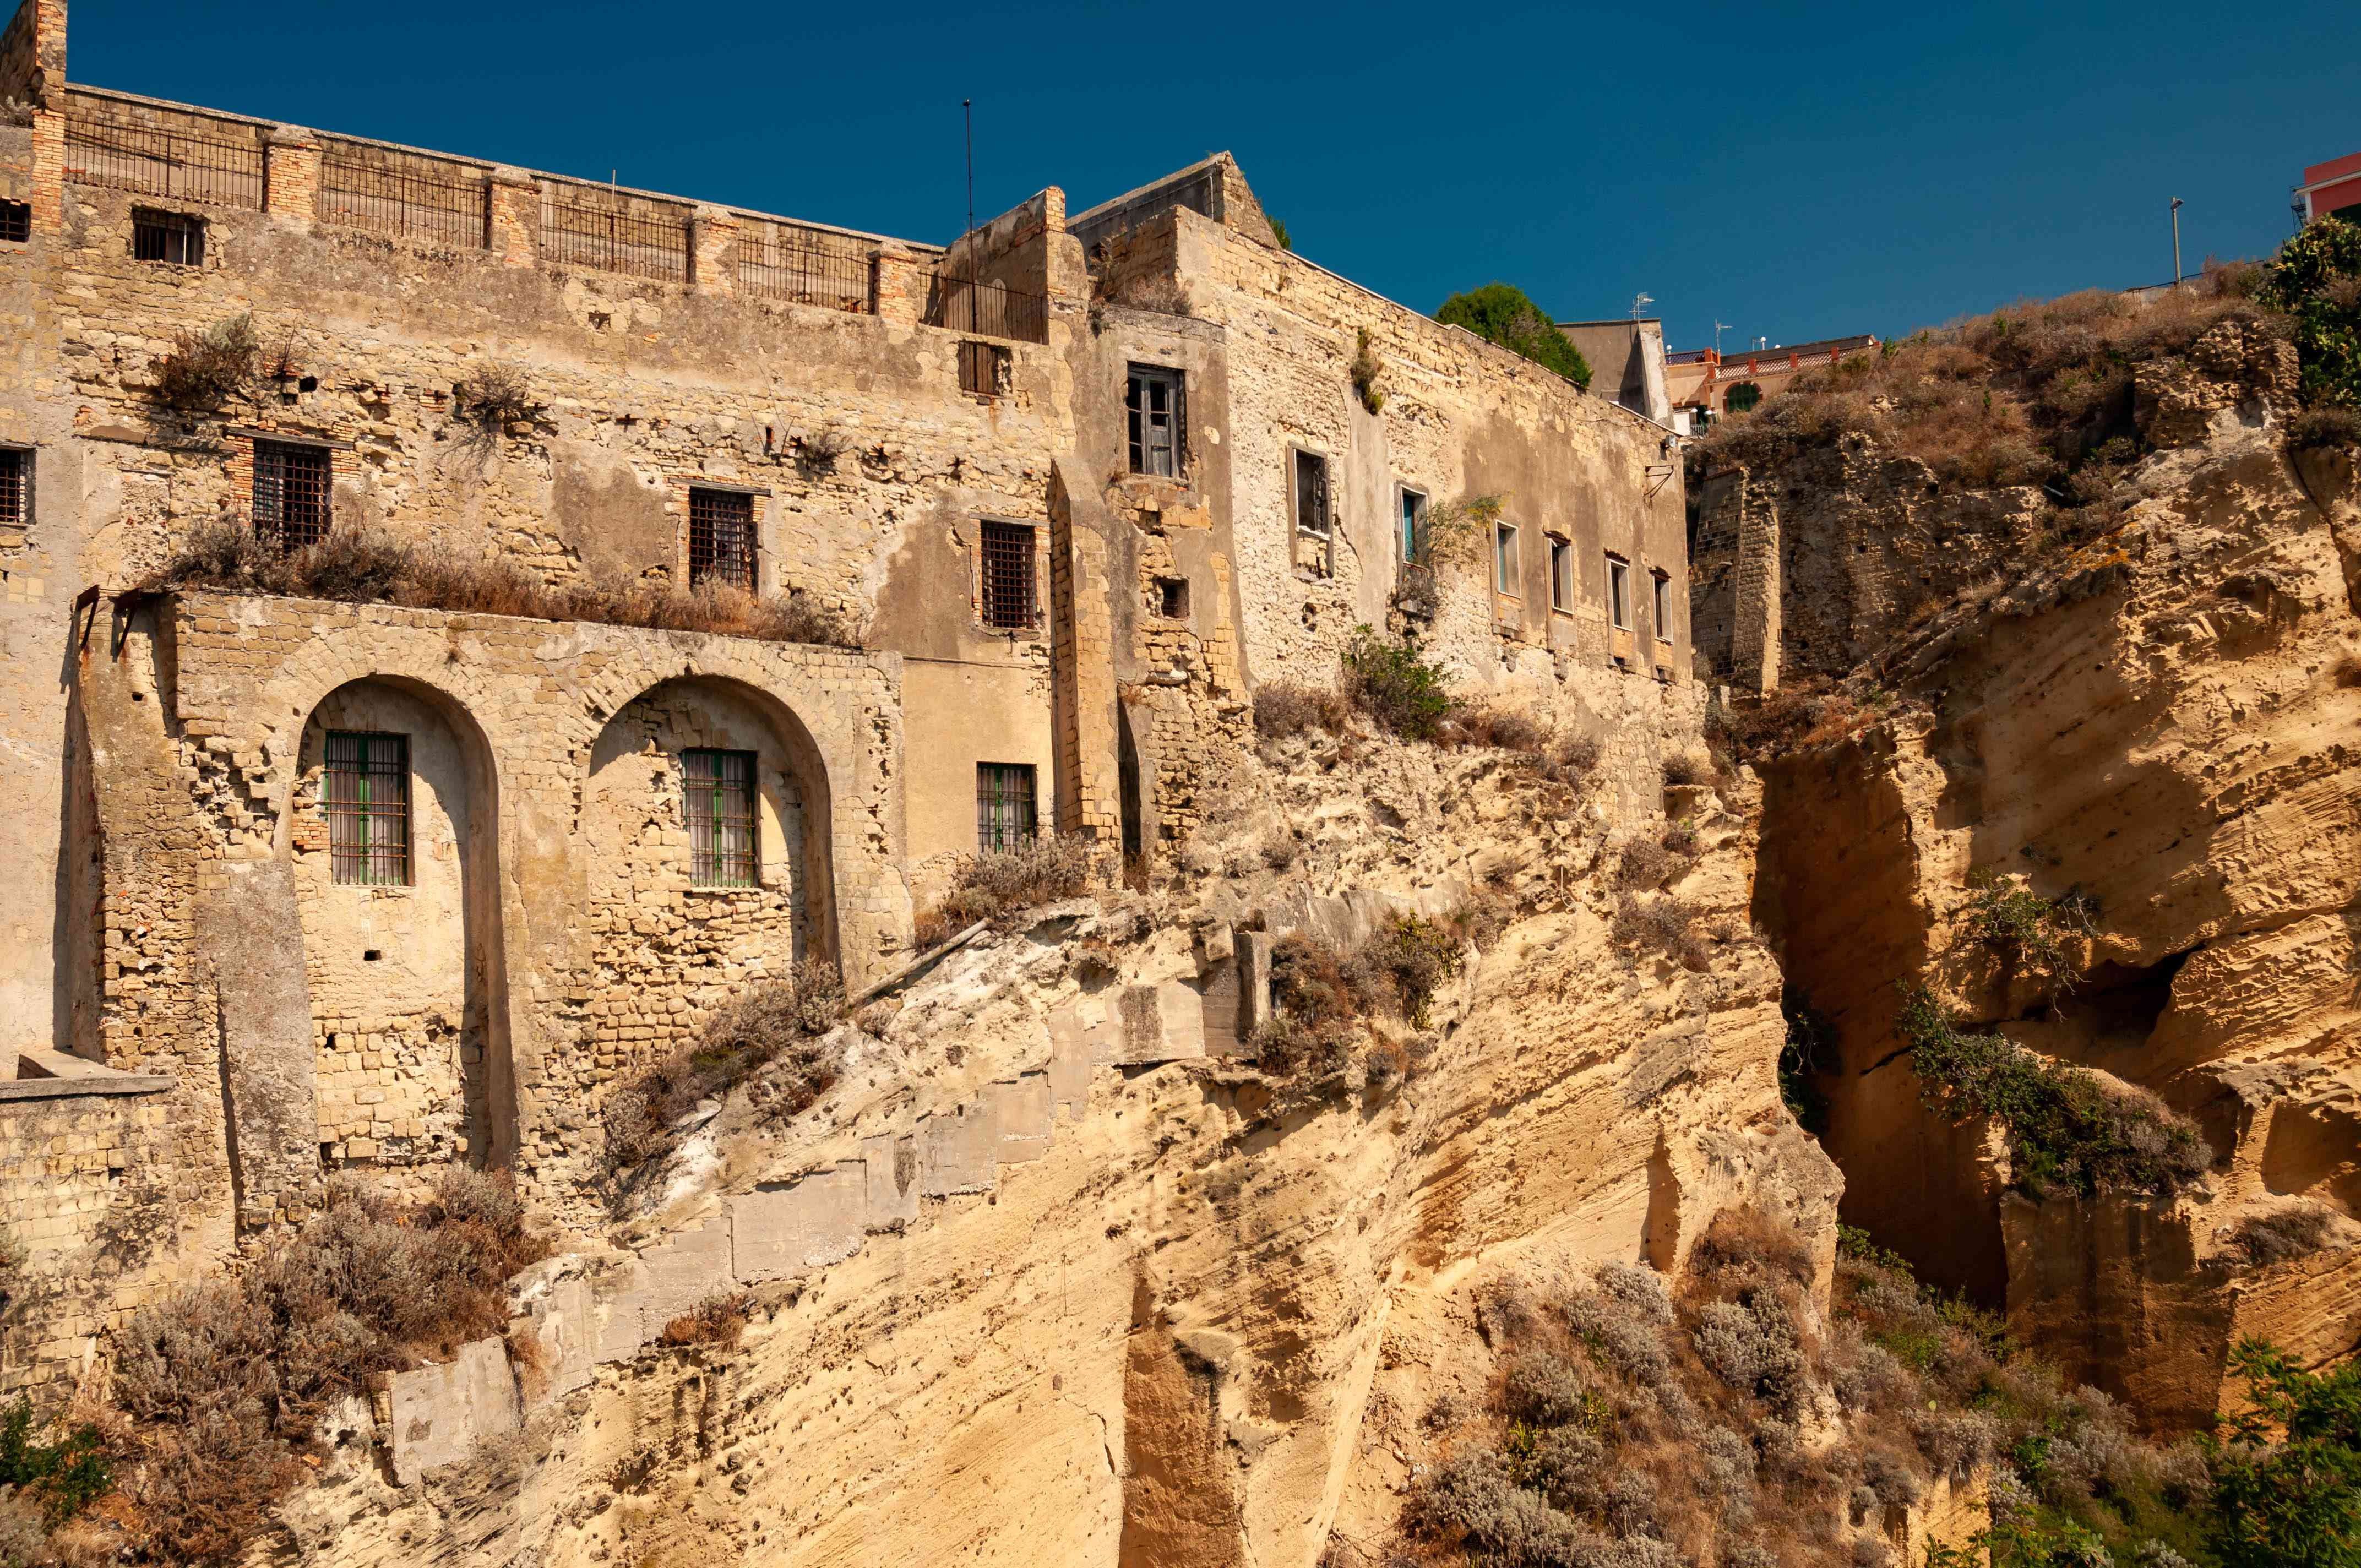 The old abandoned prison in the historic Palazzo d'Avalos on the Terra Murata cliffs, Procida Island, Italy